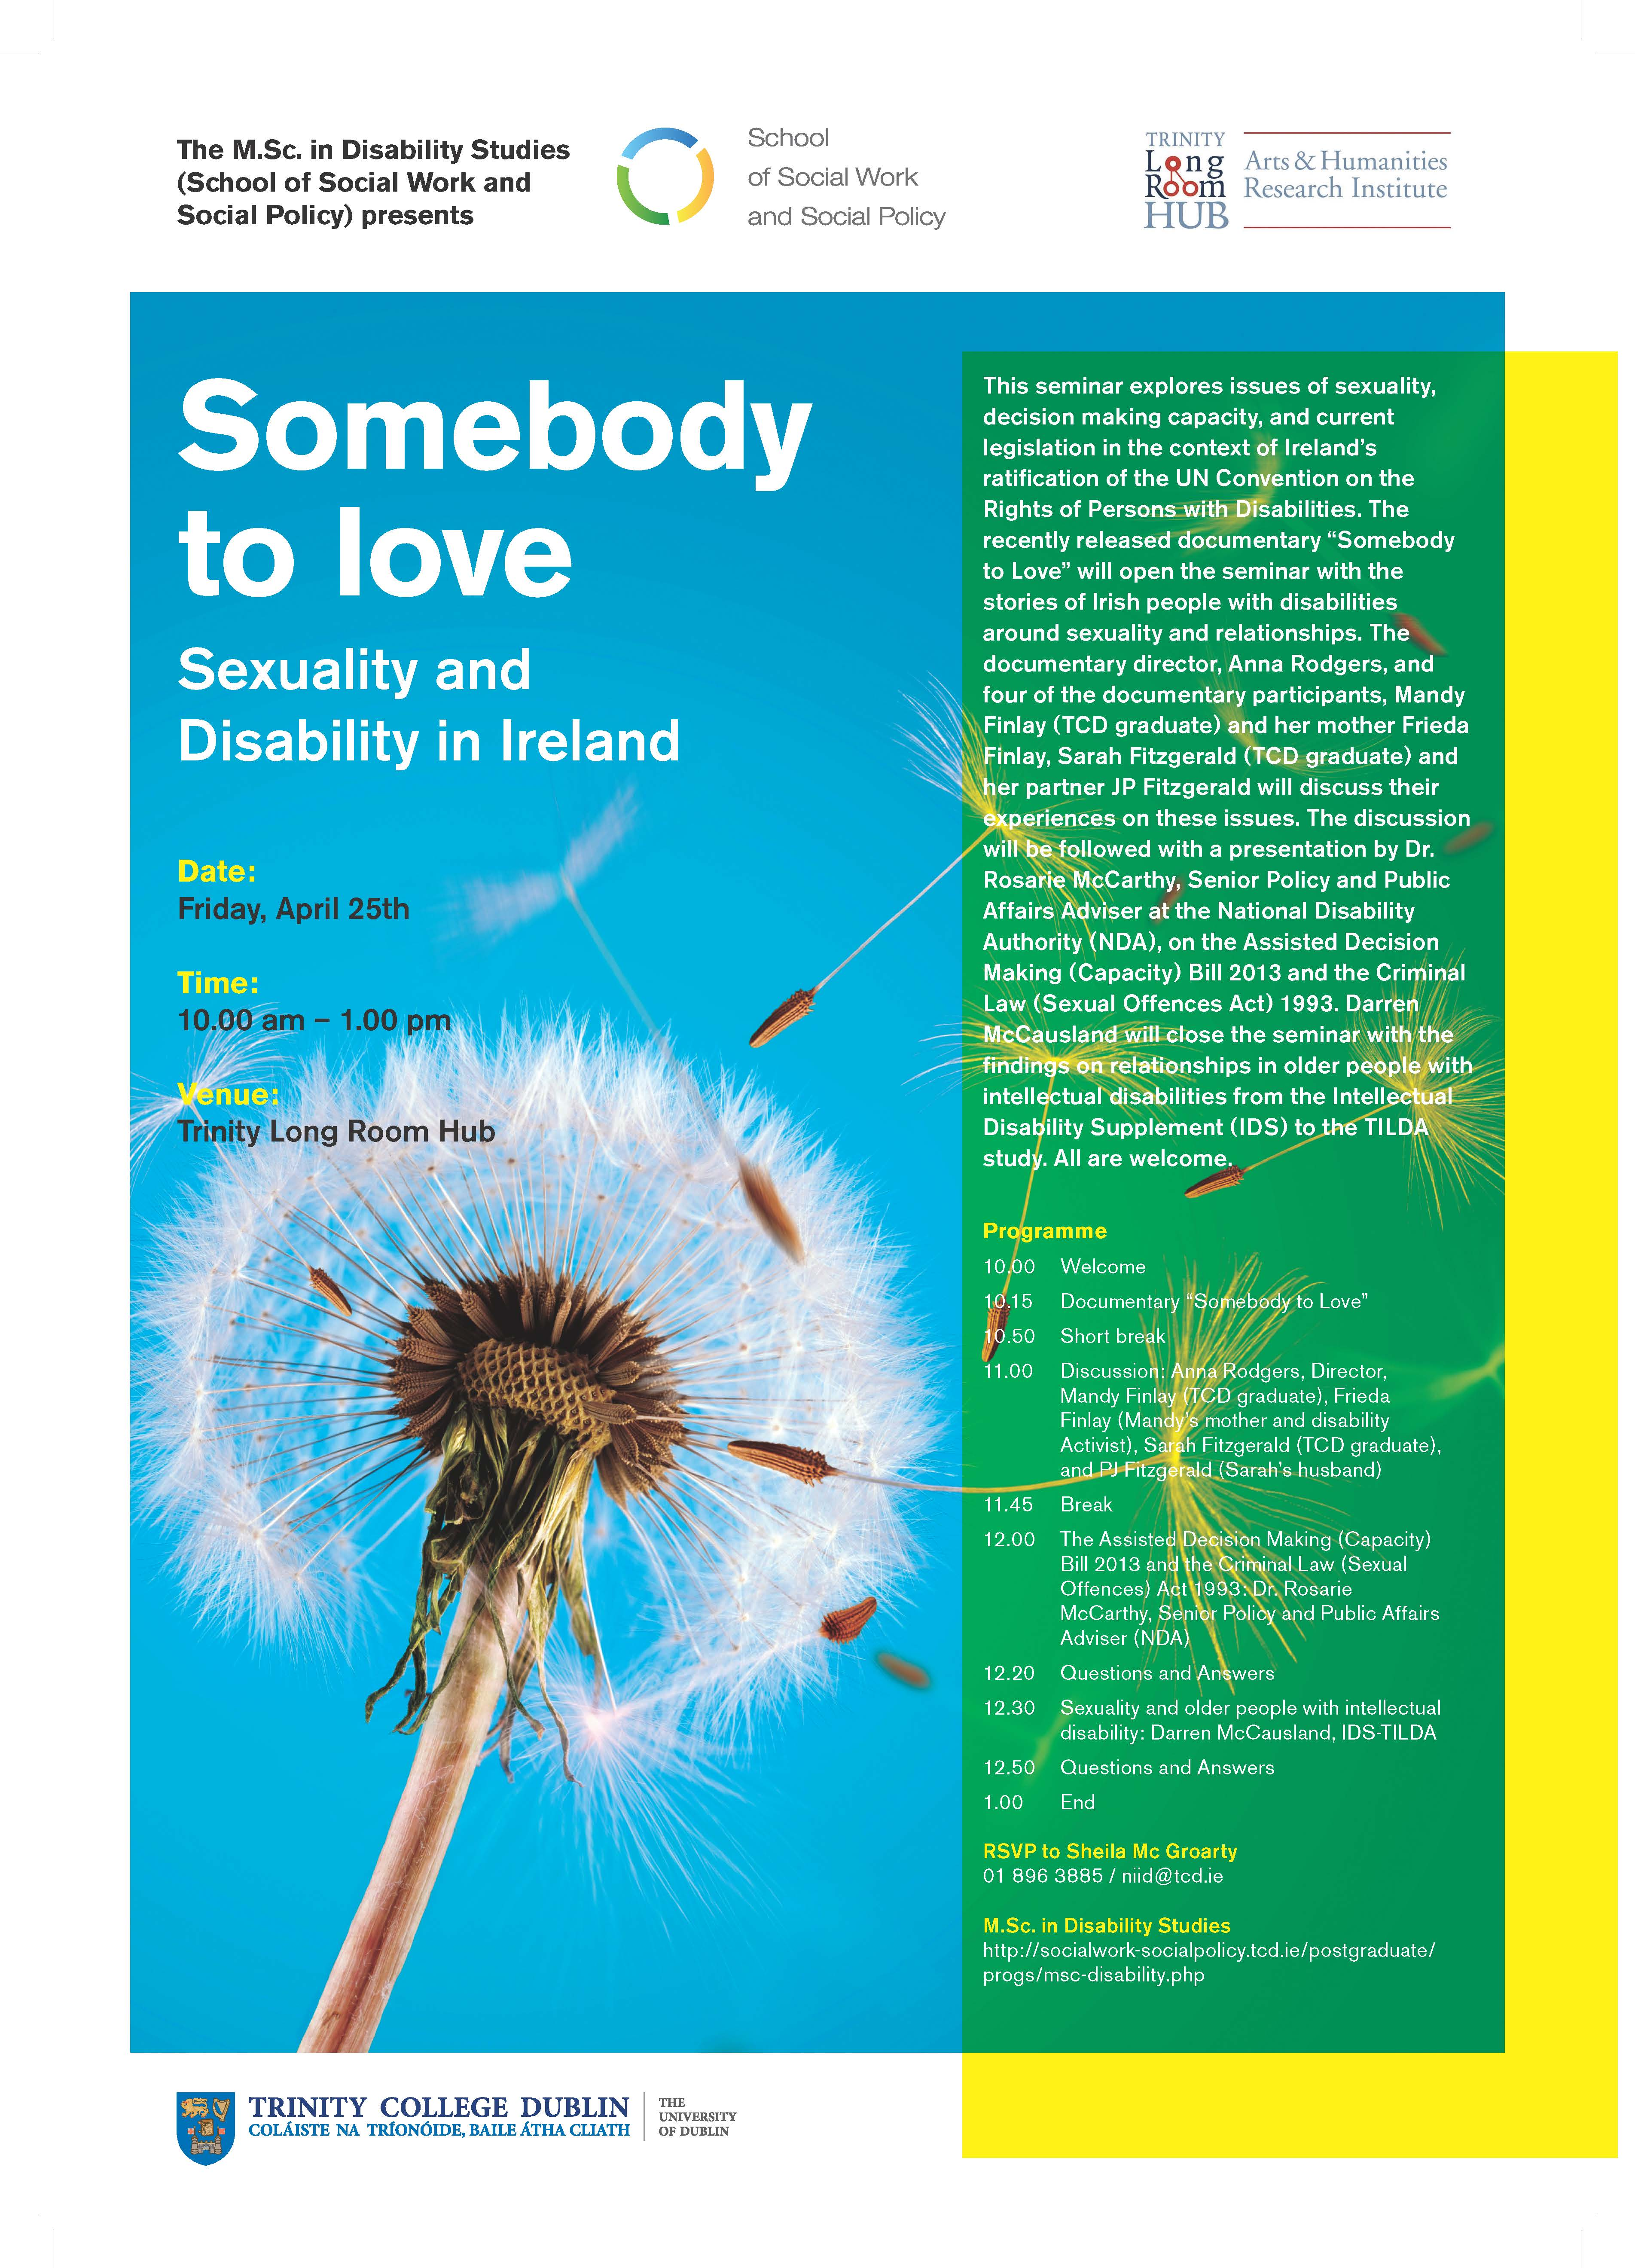 Somebody to Love - School of Social Work and Social Policy